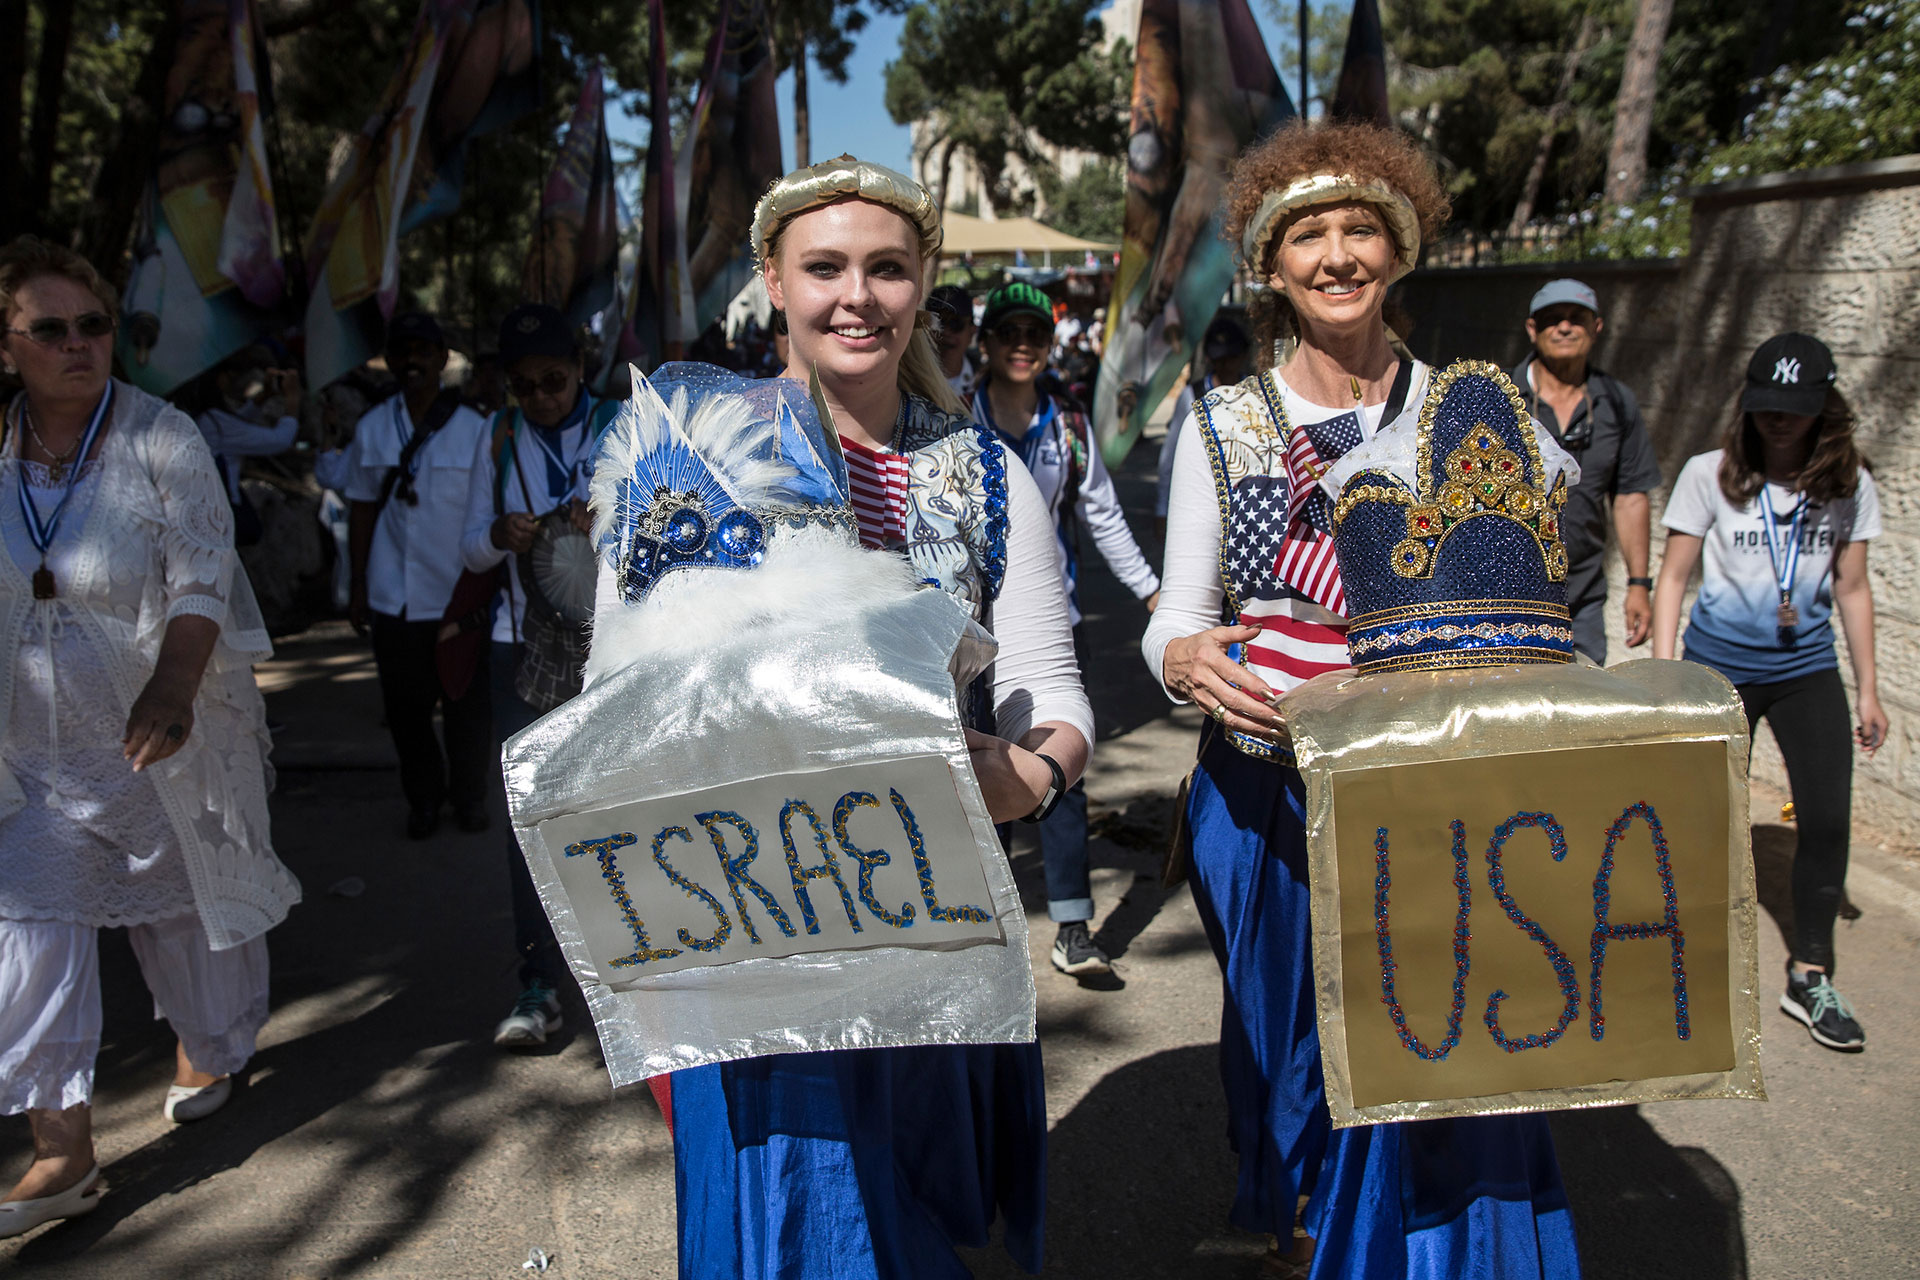 Christian pilgrims from the USA participate during a parade in Jerusalem on September 27,2018. Thousands of Christians from around the world came to Jerusalem for the week long Feast of Tabernacles, also known as Sukkot. (Photo by Heidi Levine for The GroundTruth Project).